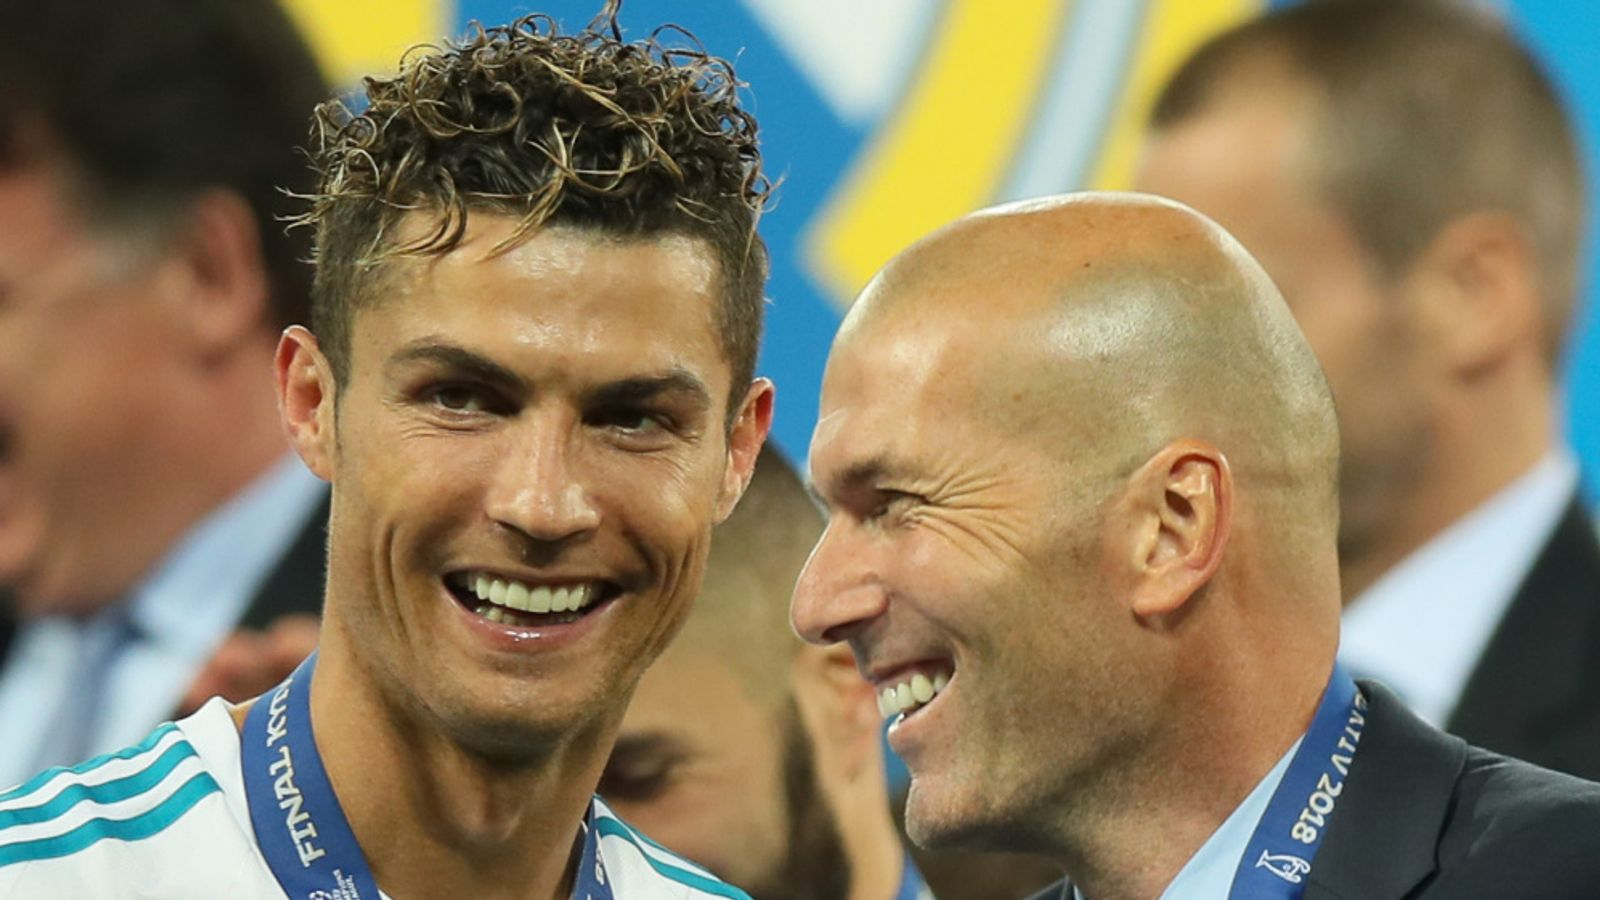 Zidane confirms Real Madrid are interested in signing Cristiano Ronaldo